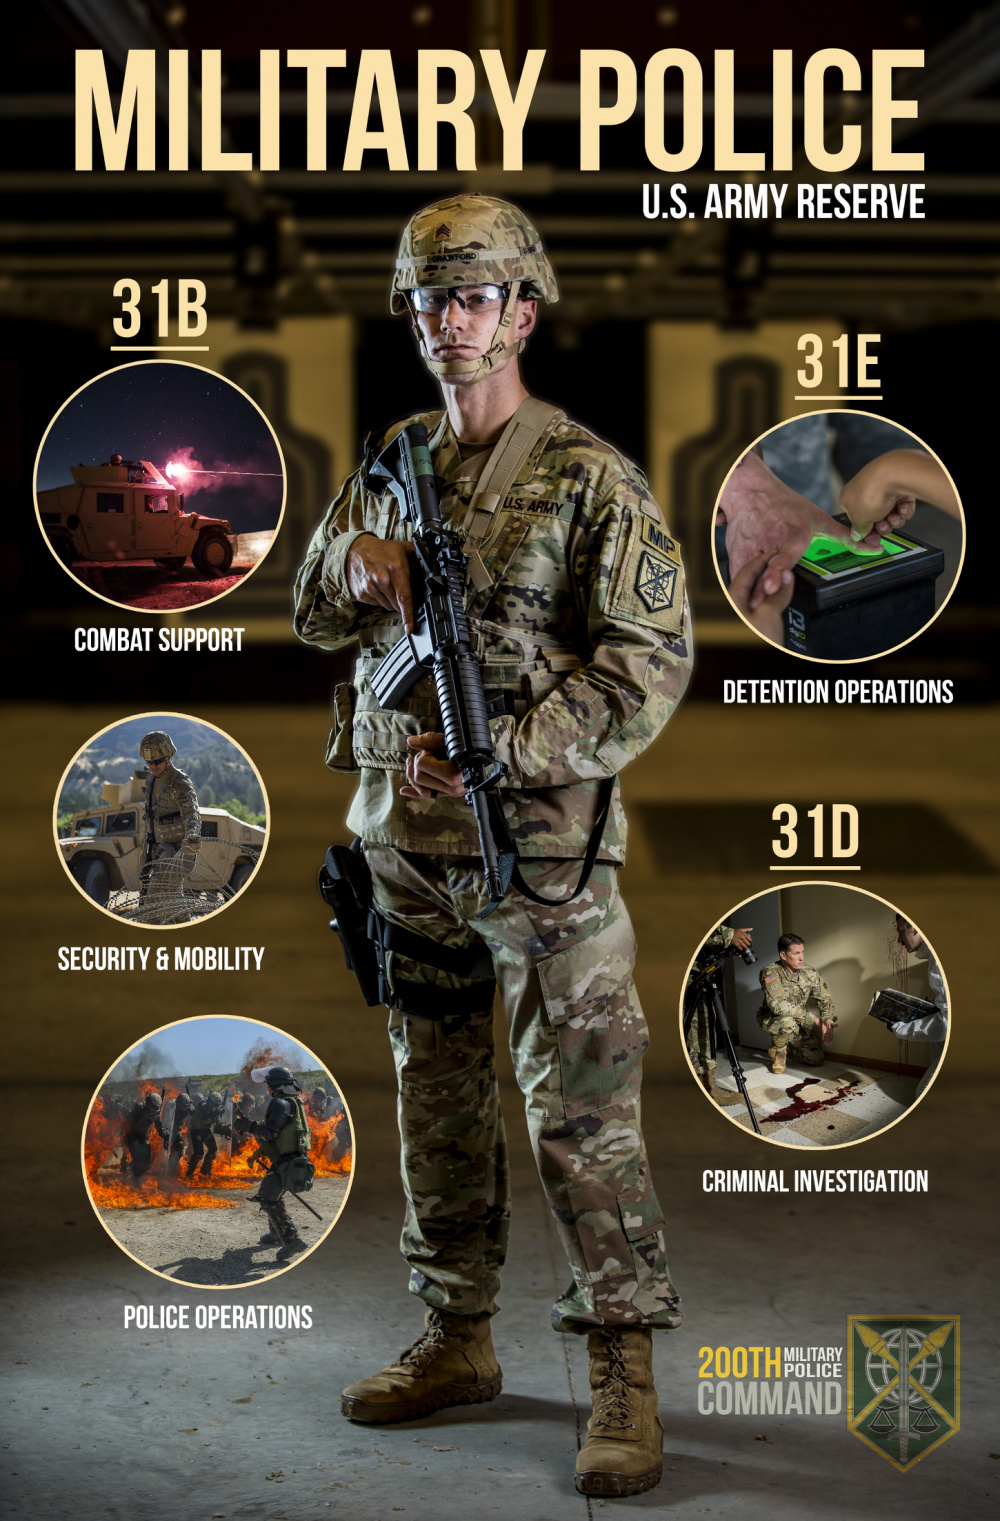 Poster: Military Police - U.S. Army Reserve